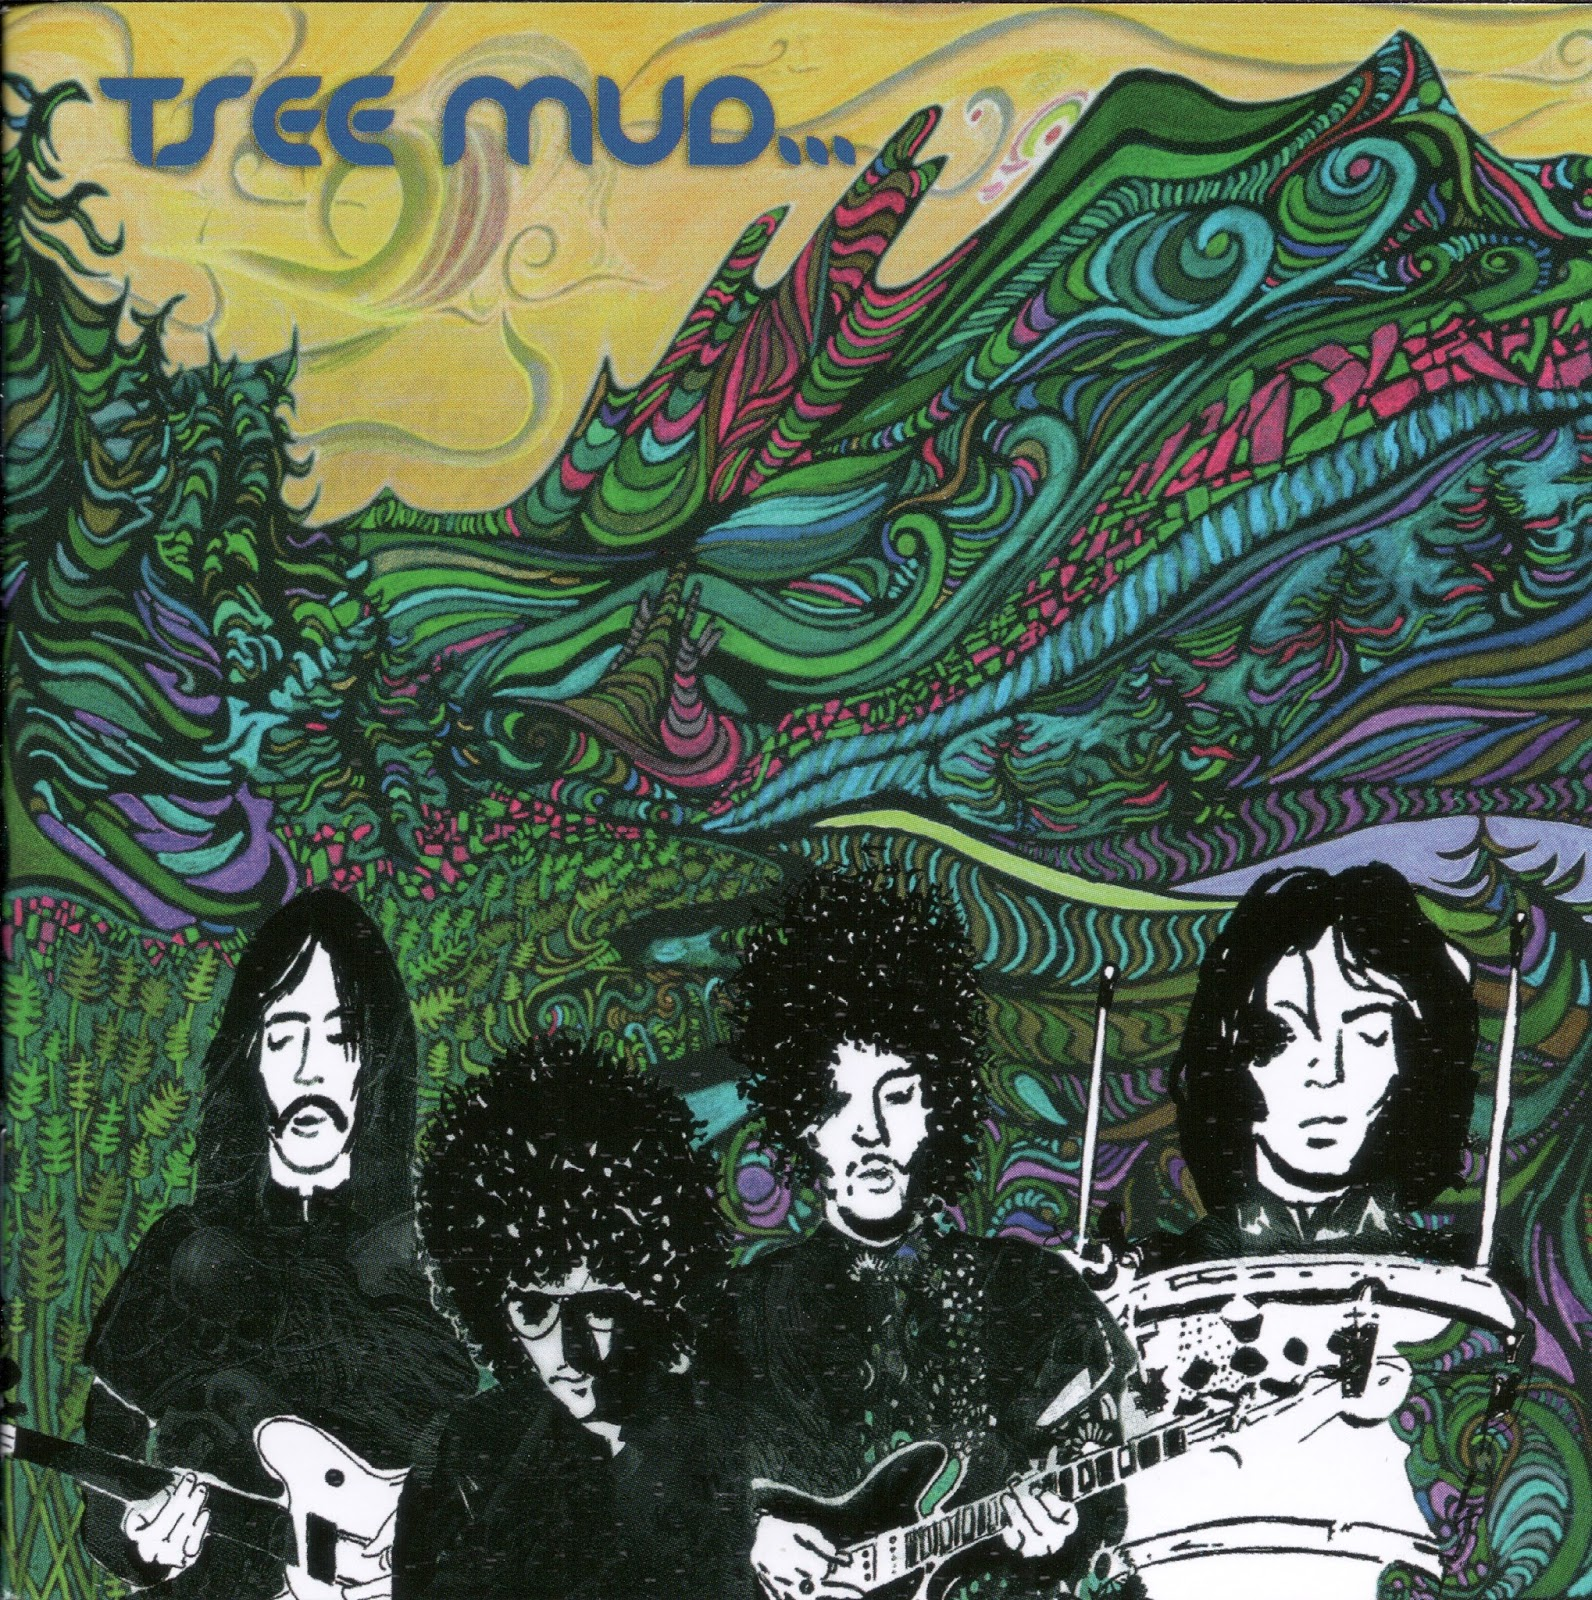 Venezuelan Fuzz Rock Outfit Tsee Mud Was The Brainchild Of Guitarist Jos Romero Who Made His Name In 1960s Playing Local Bands Like LSD And Bacro